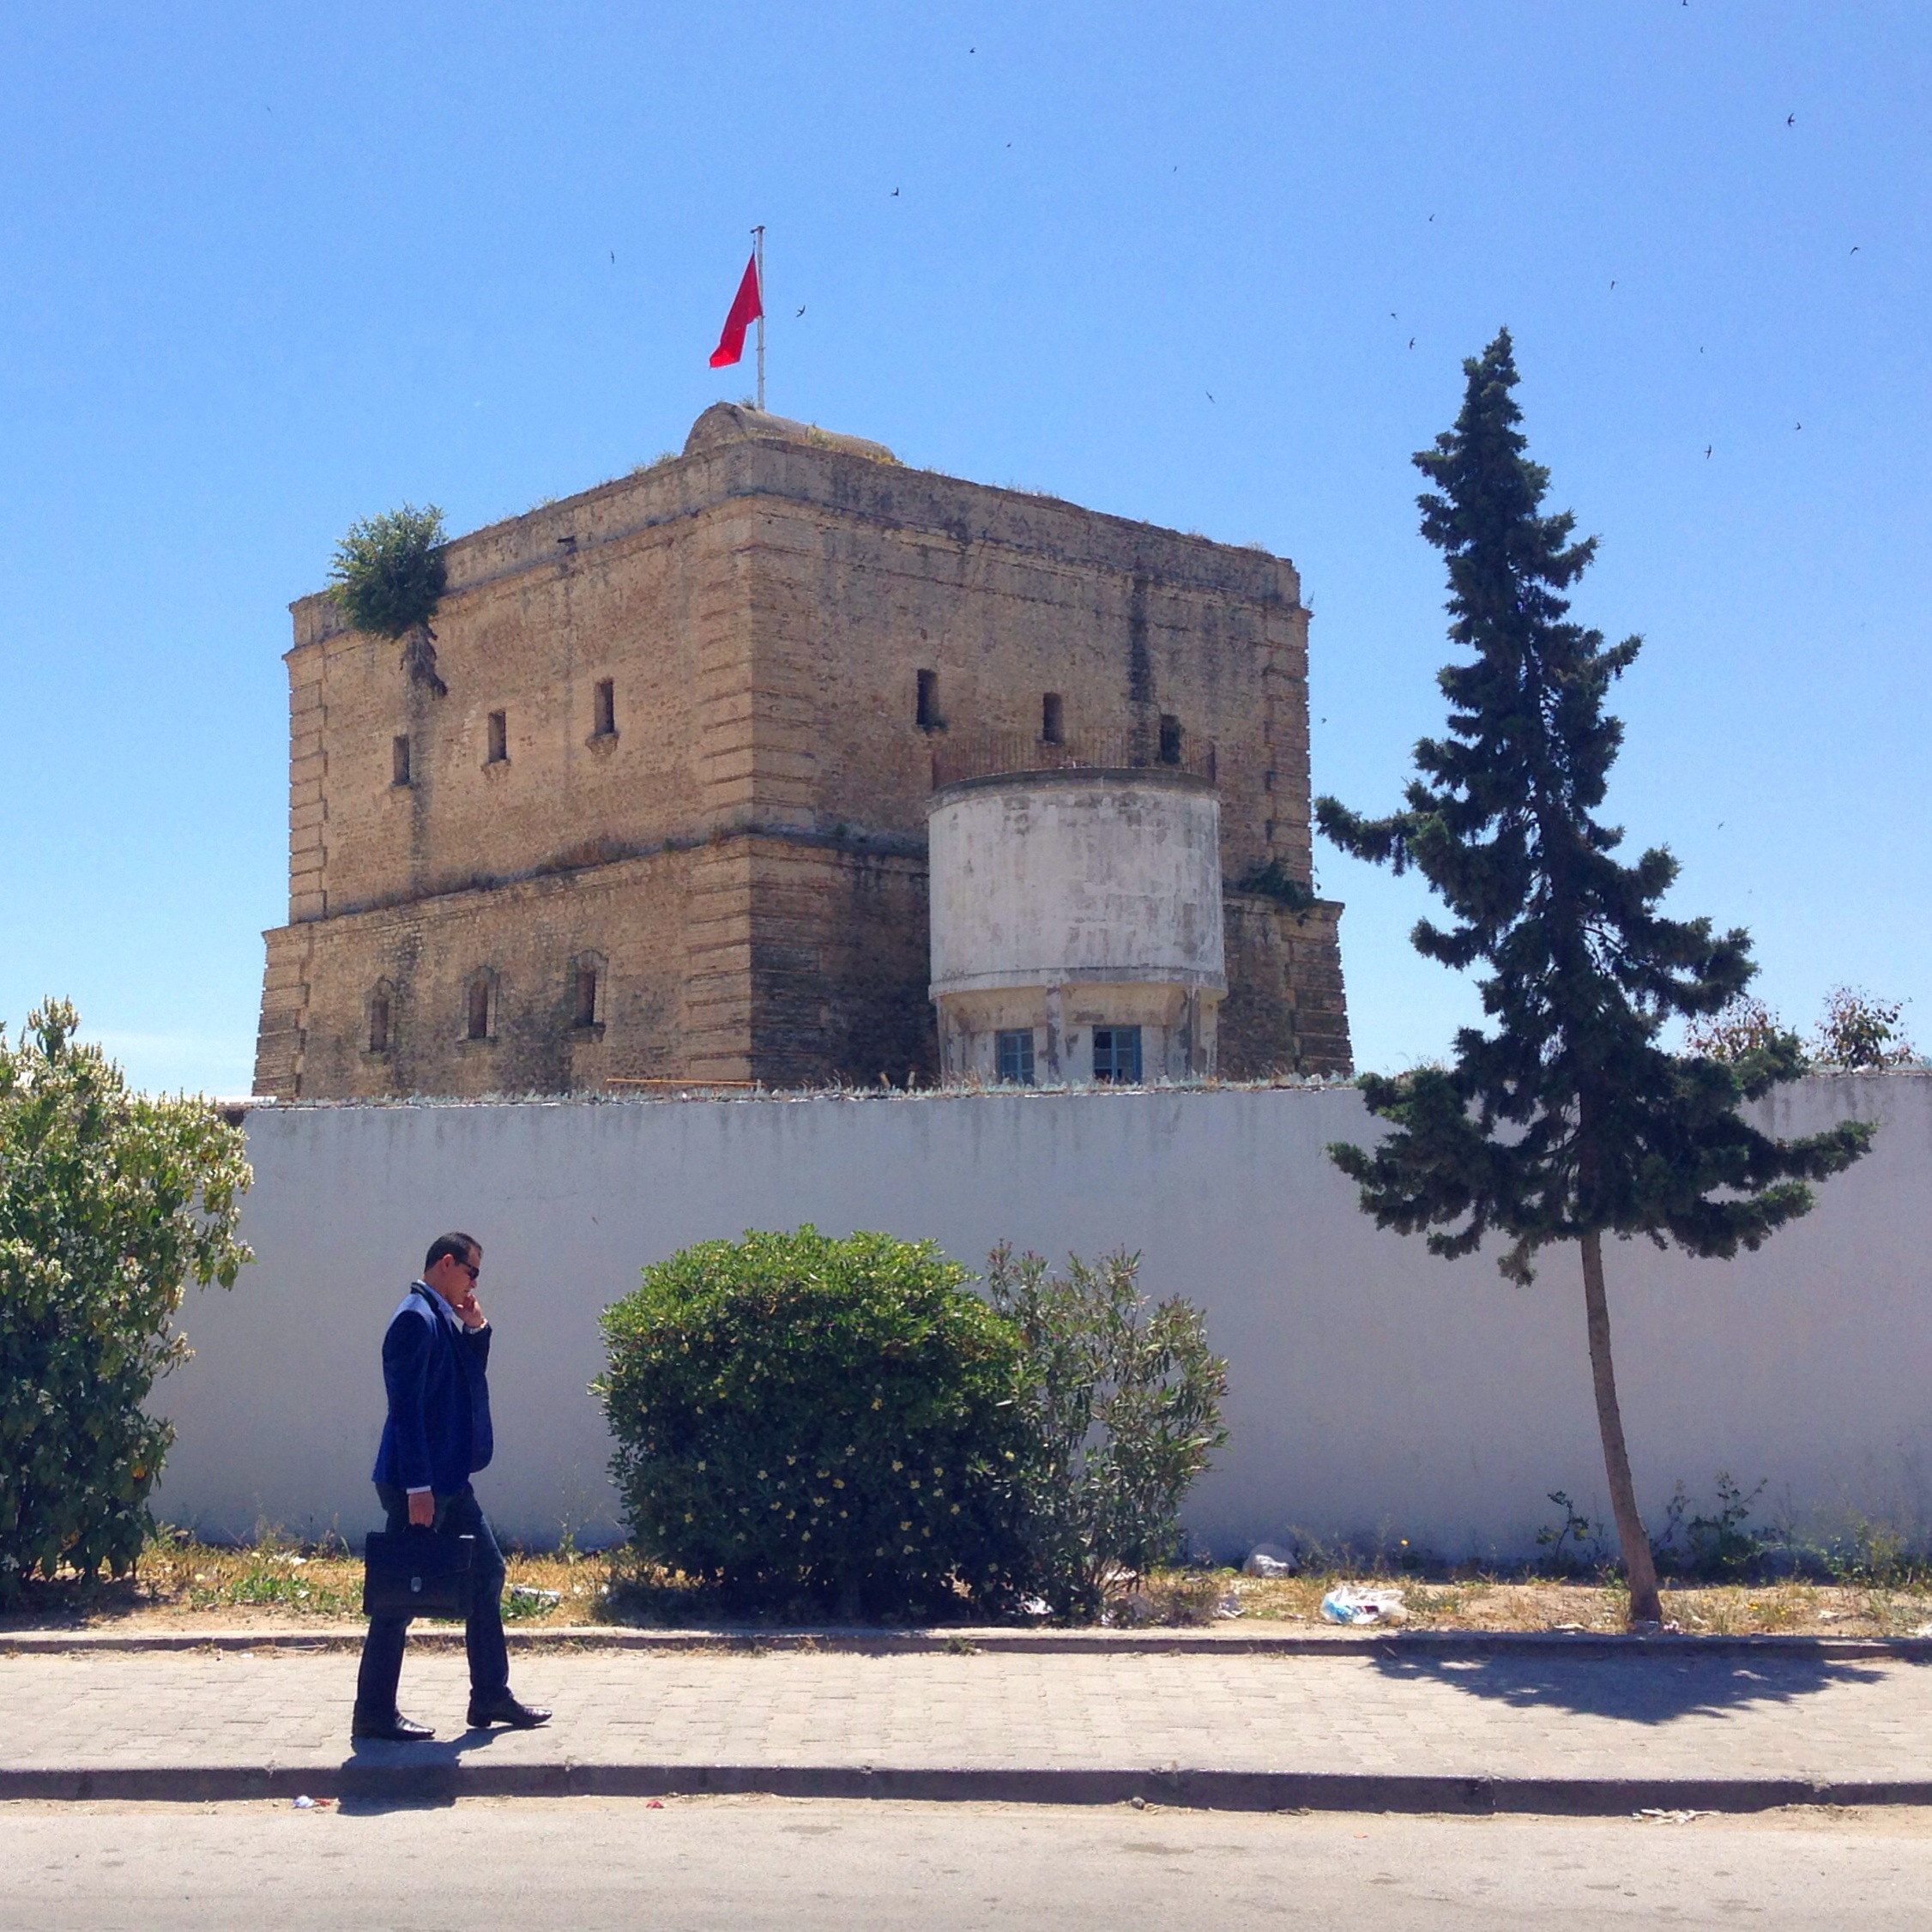 Tunis (Parliament), Tunisia, 2015